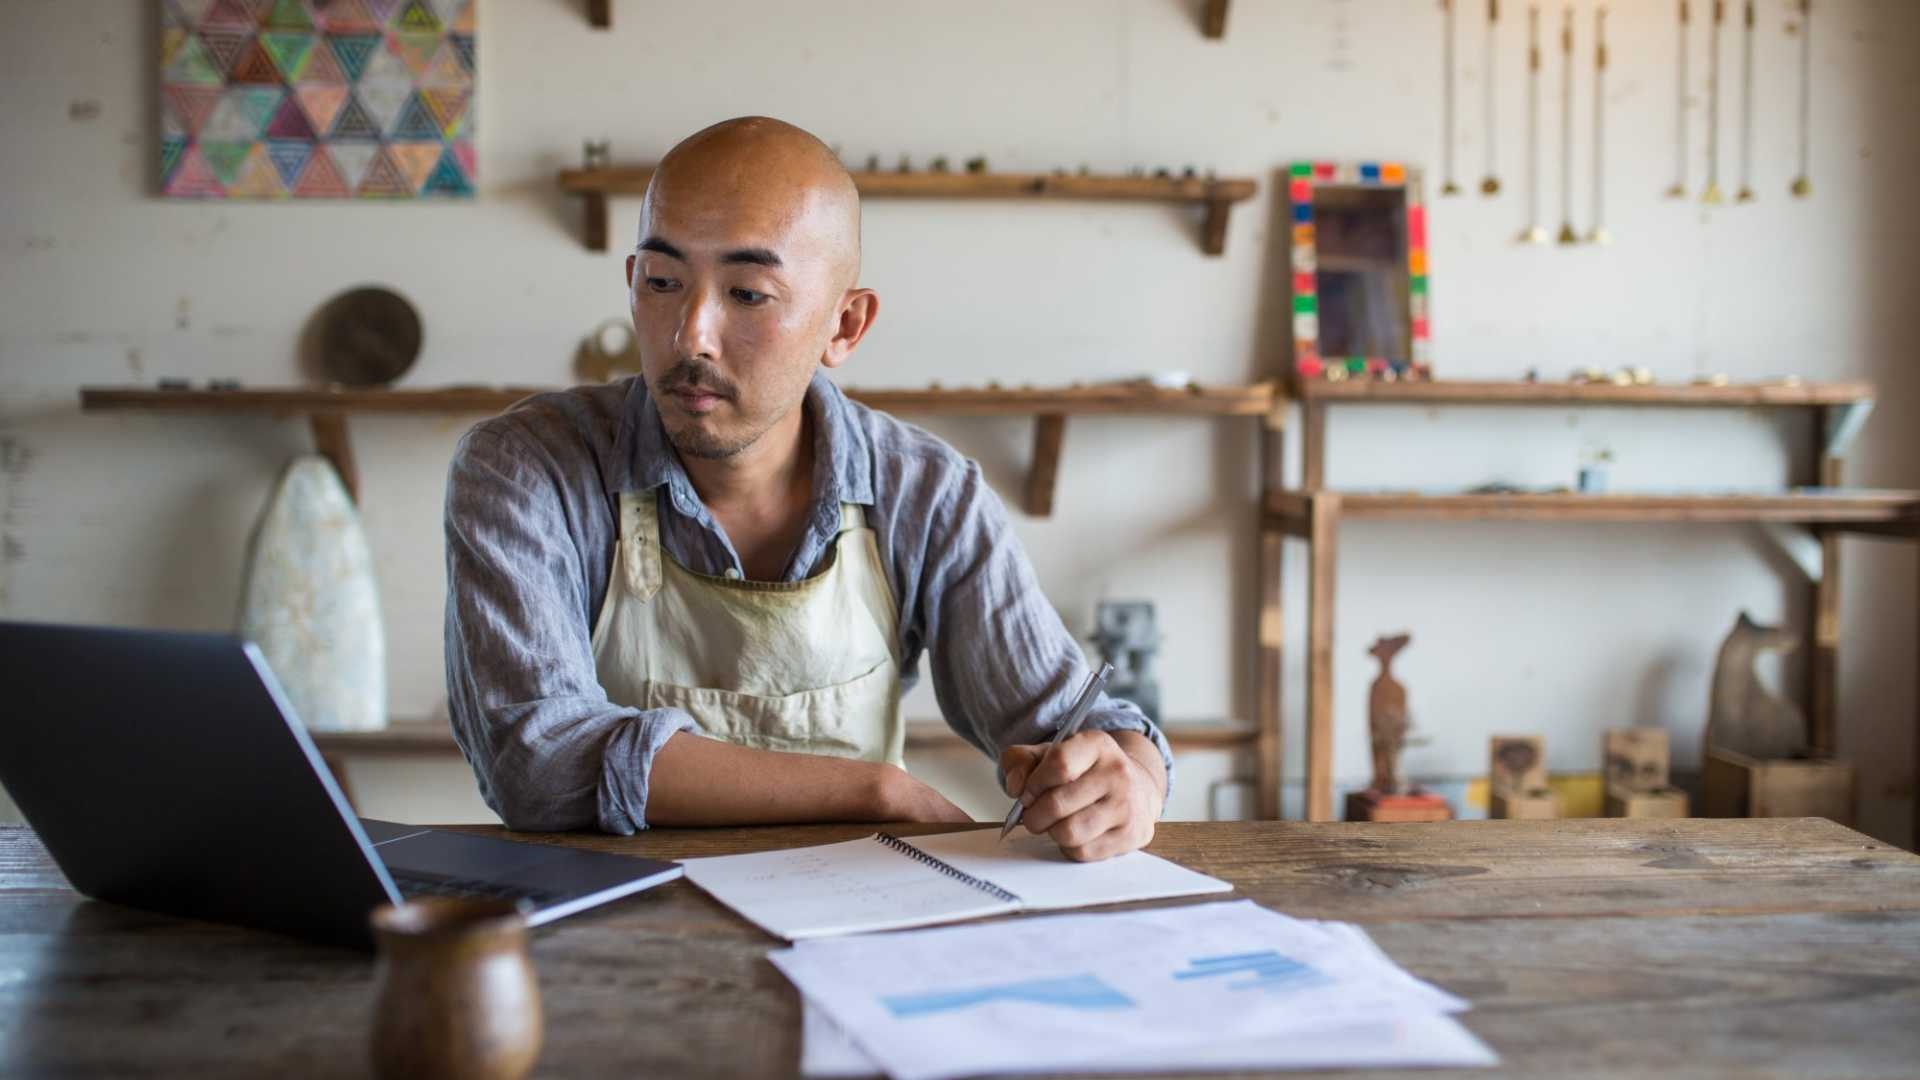 3 Proven Ways to Make More Money and Work Less